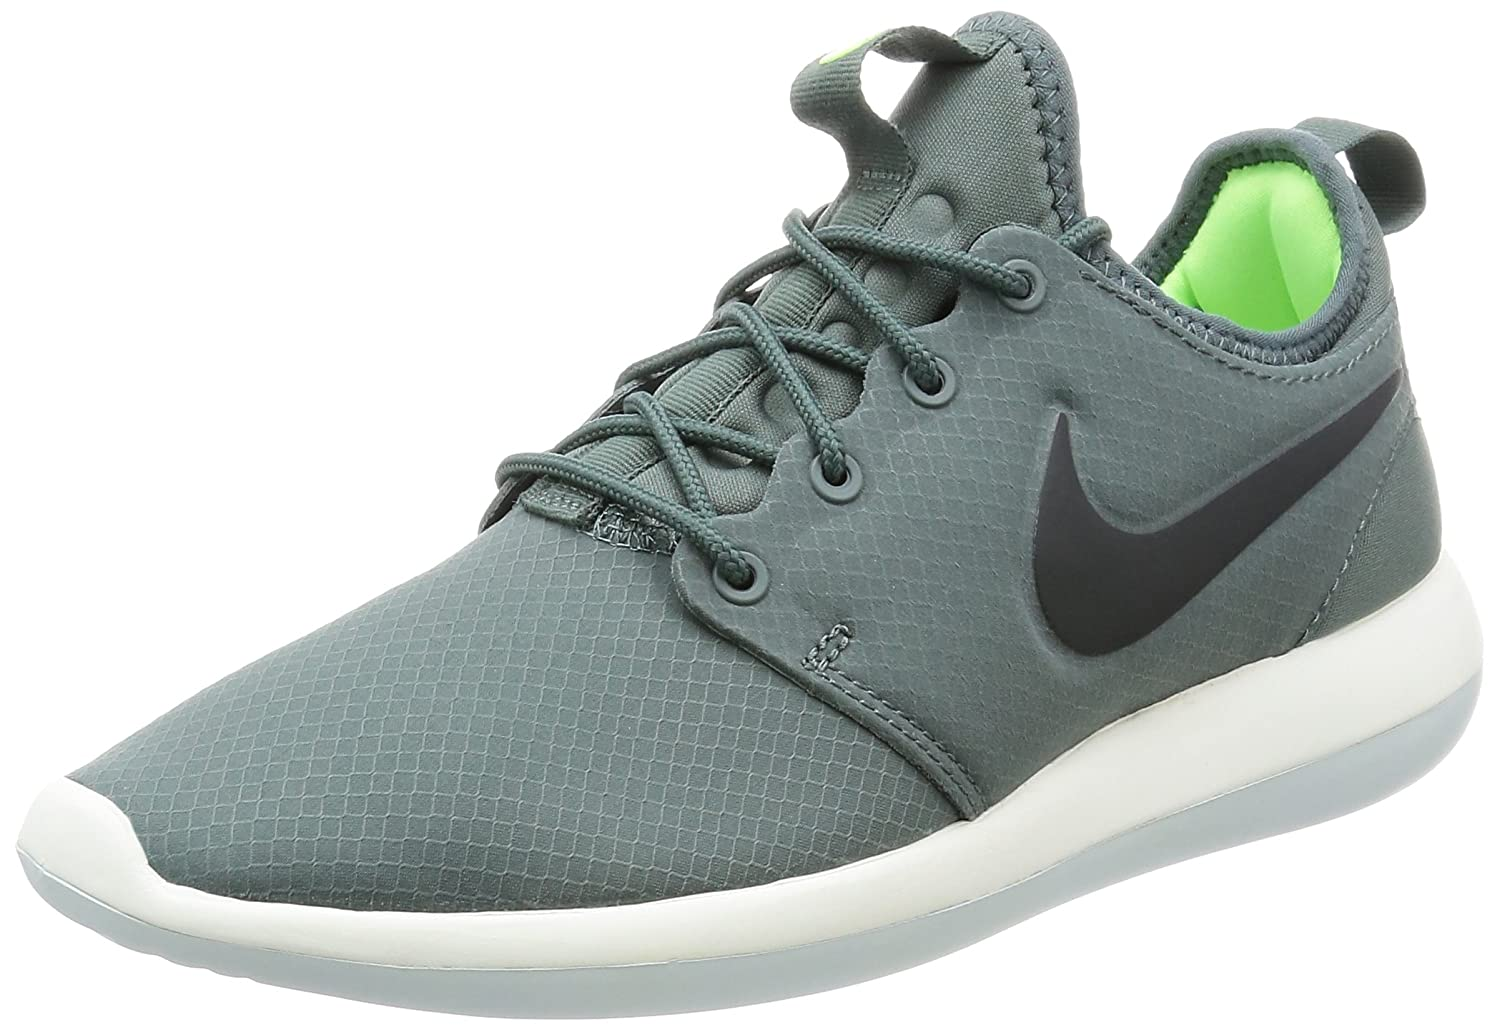 promo code 0e7f8 34634 Amazon.com | Nike Men's Roshe Two SE Casual Shoe (9.5, Hasta ...